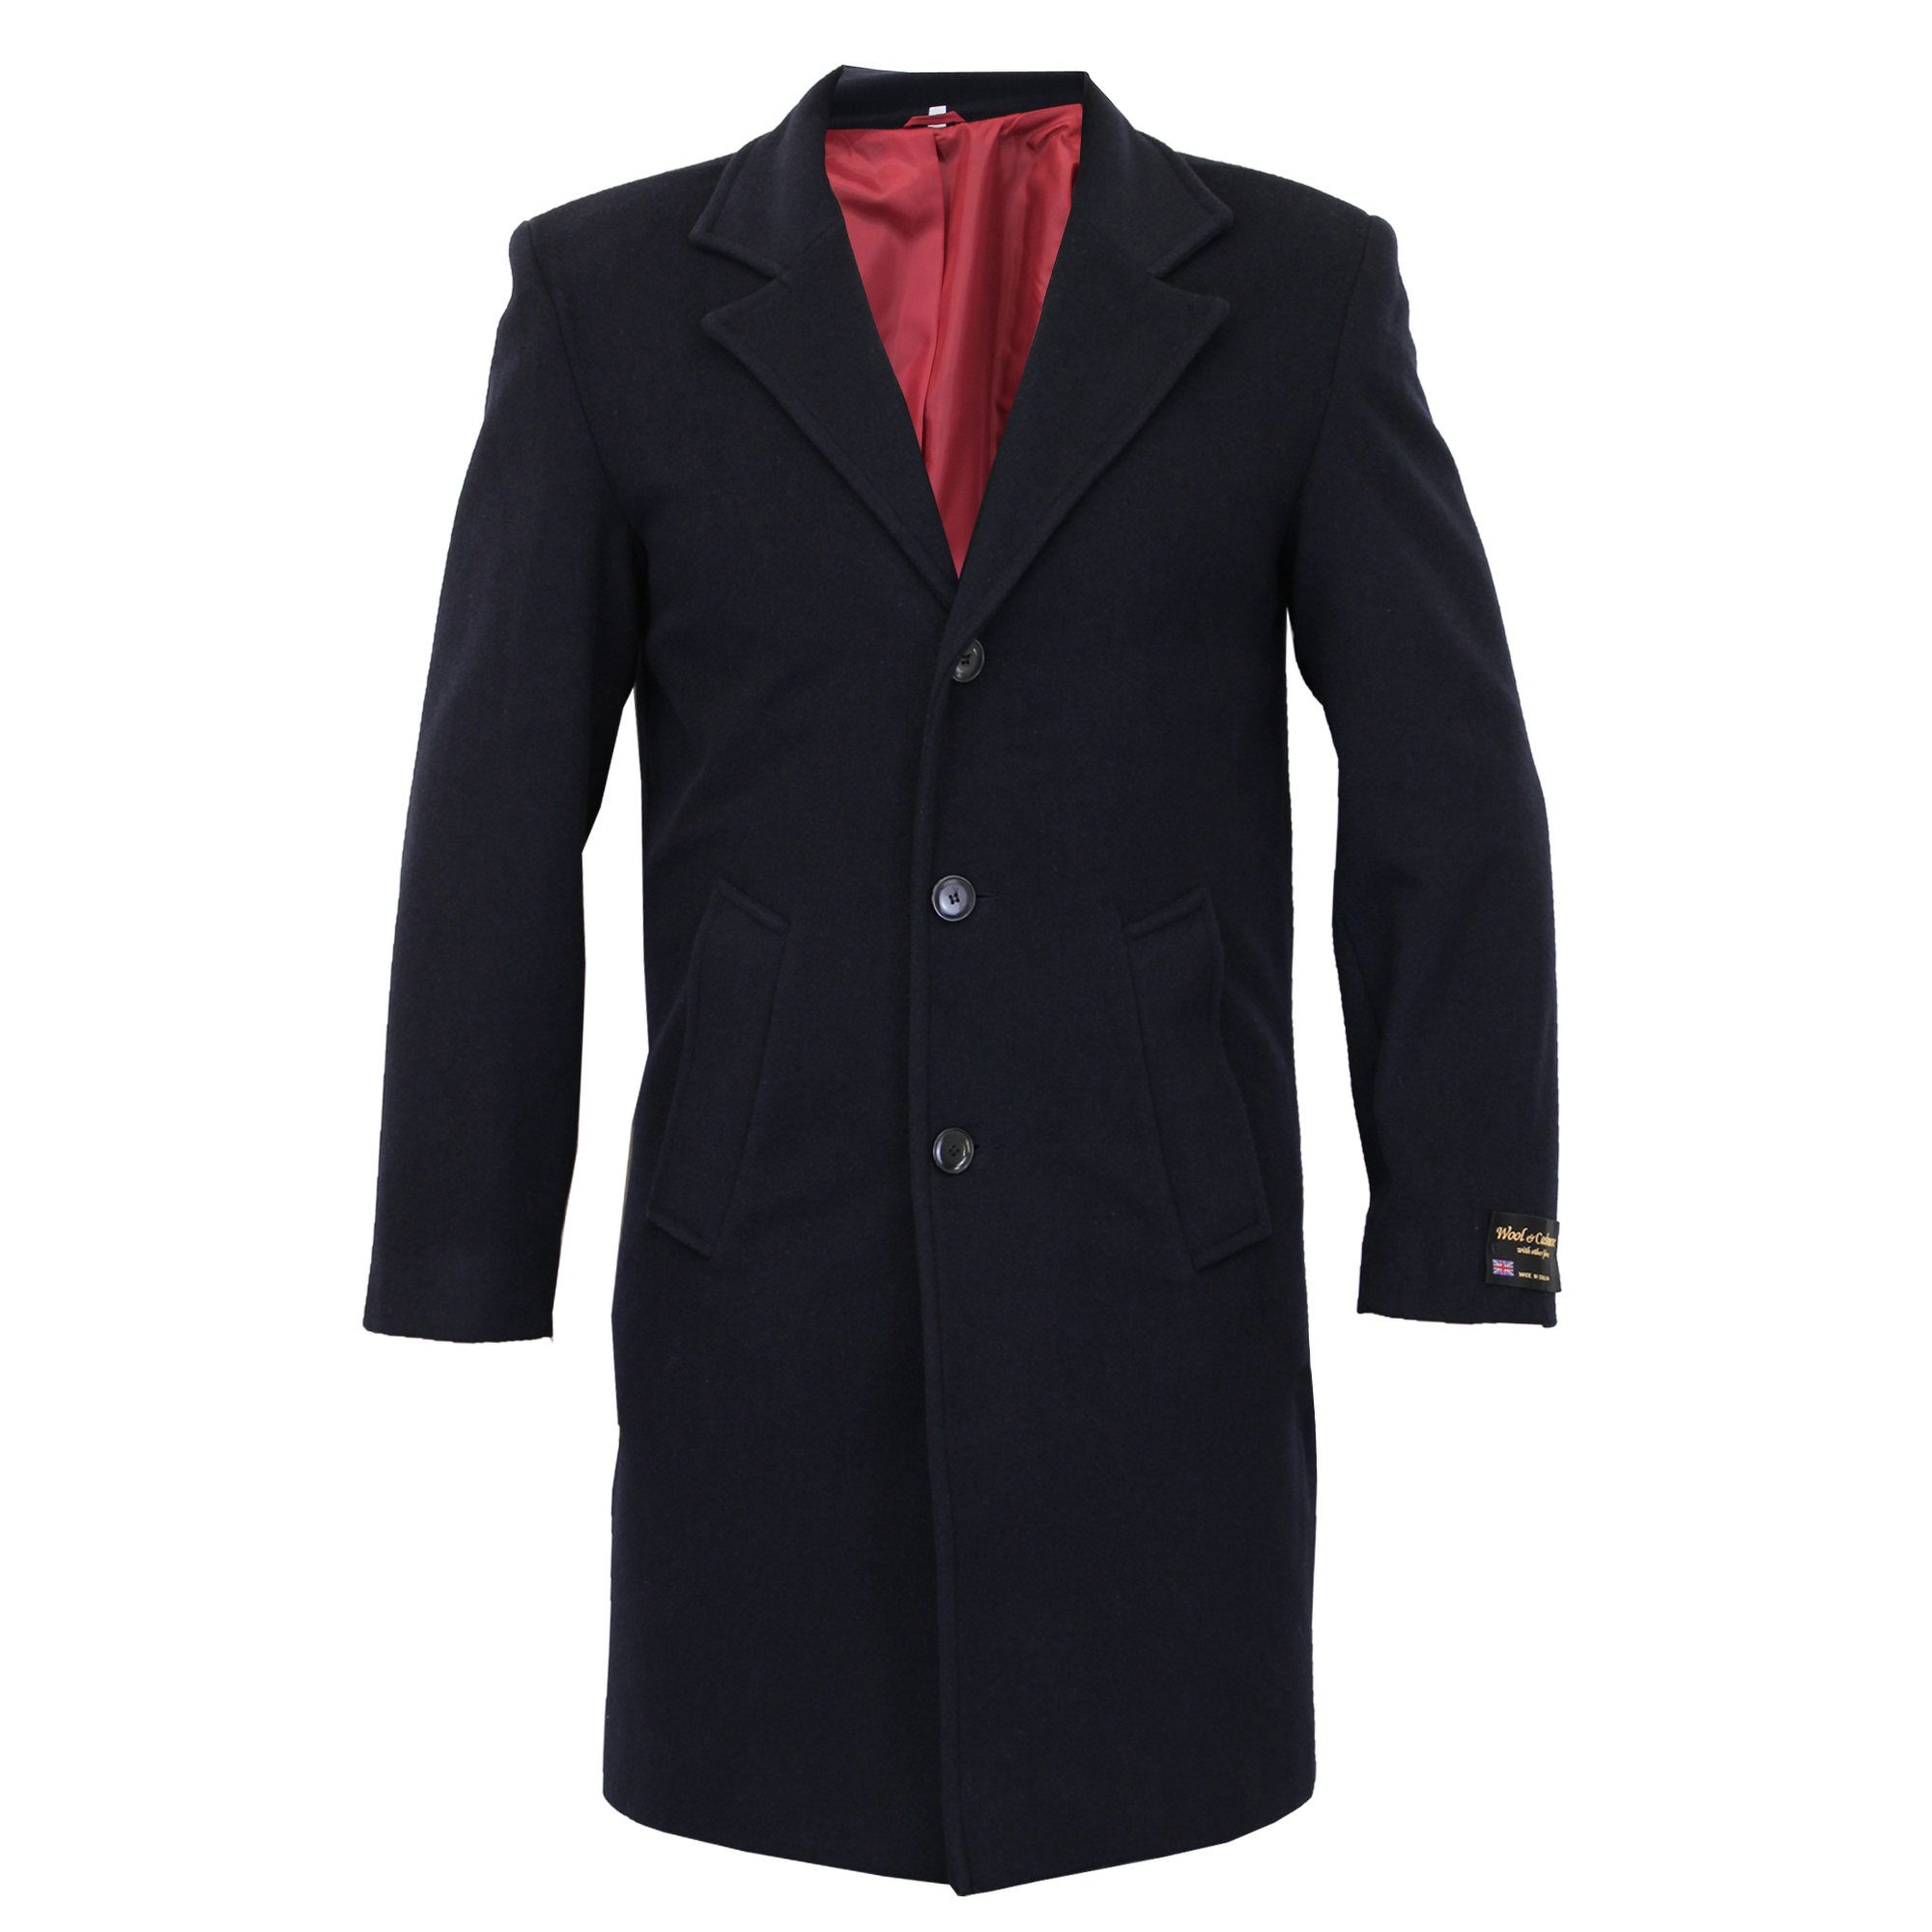 Mens Wool Cashmere Coat Jacket Outerwear Trench Overcoat